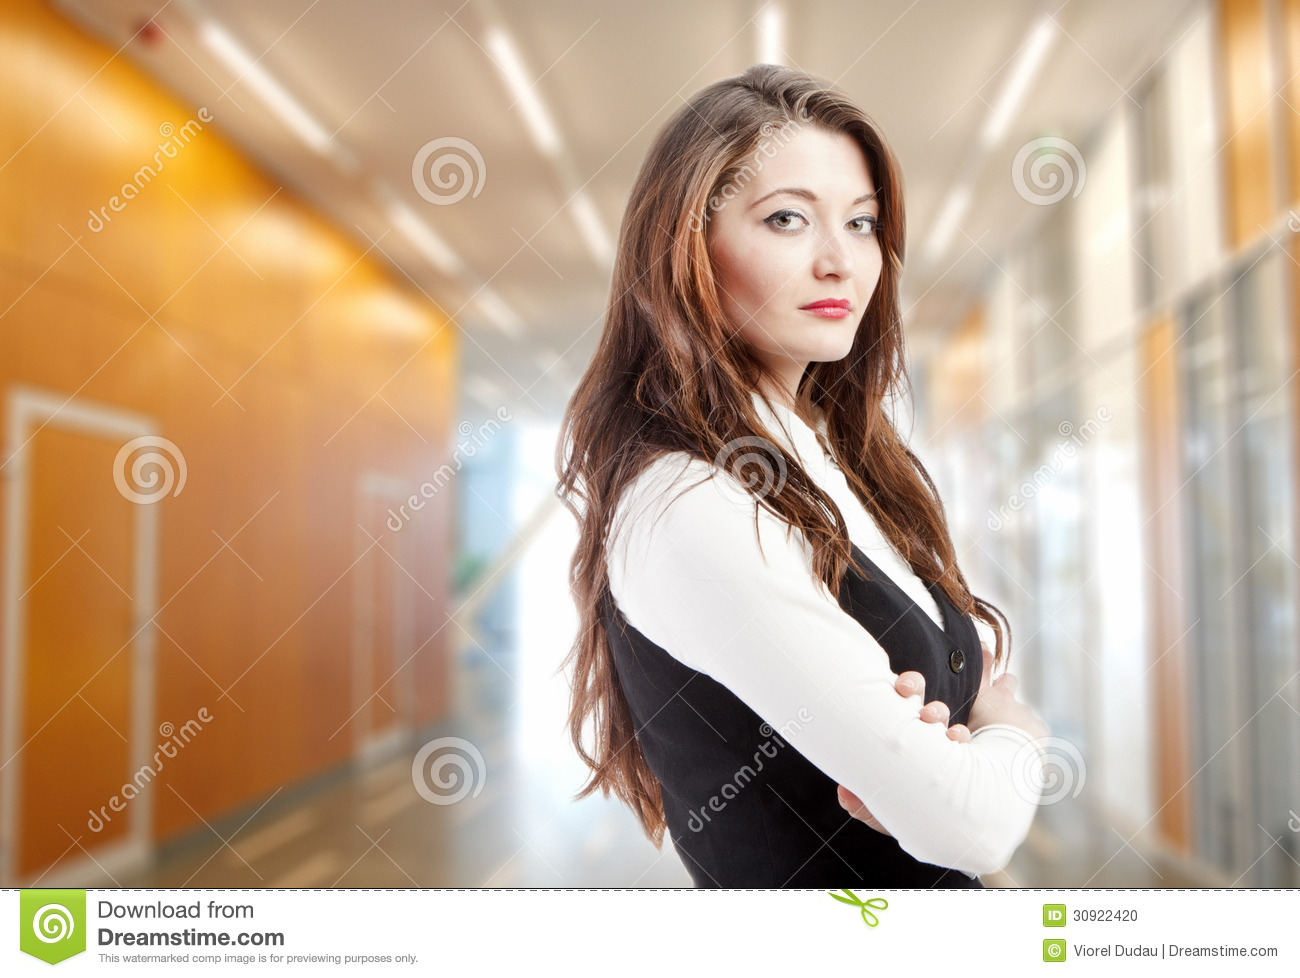 Woman in office building